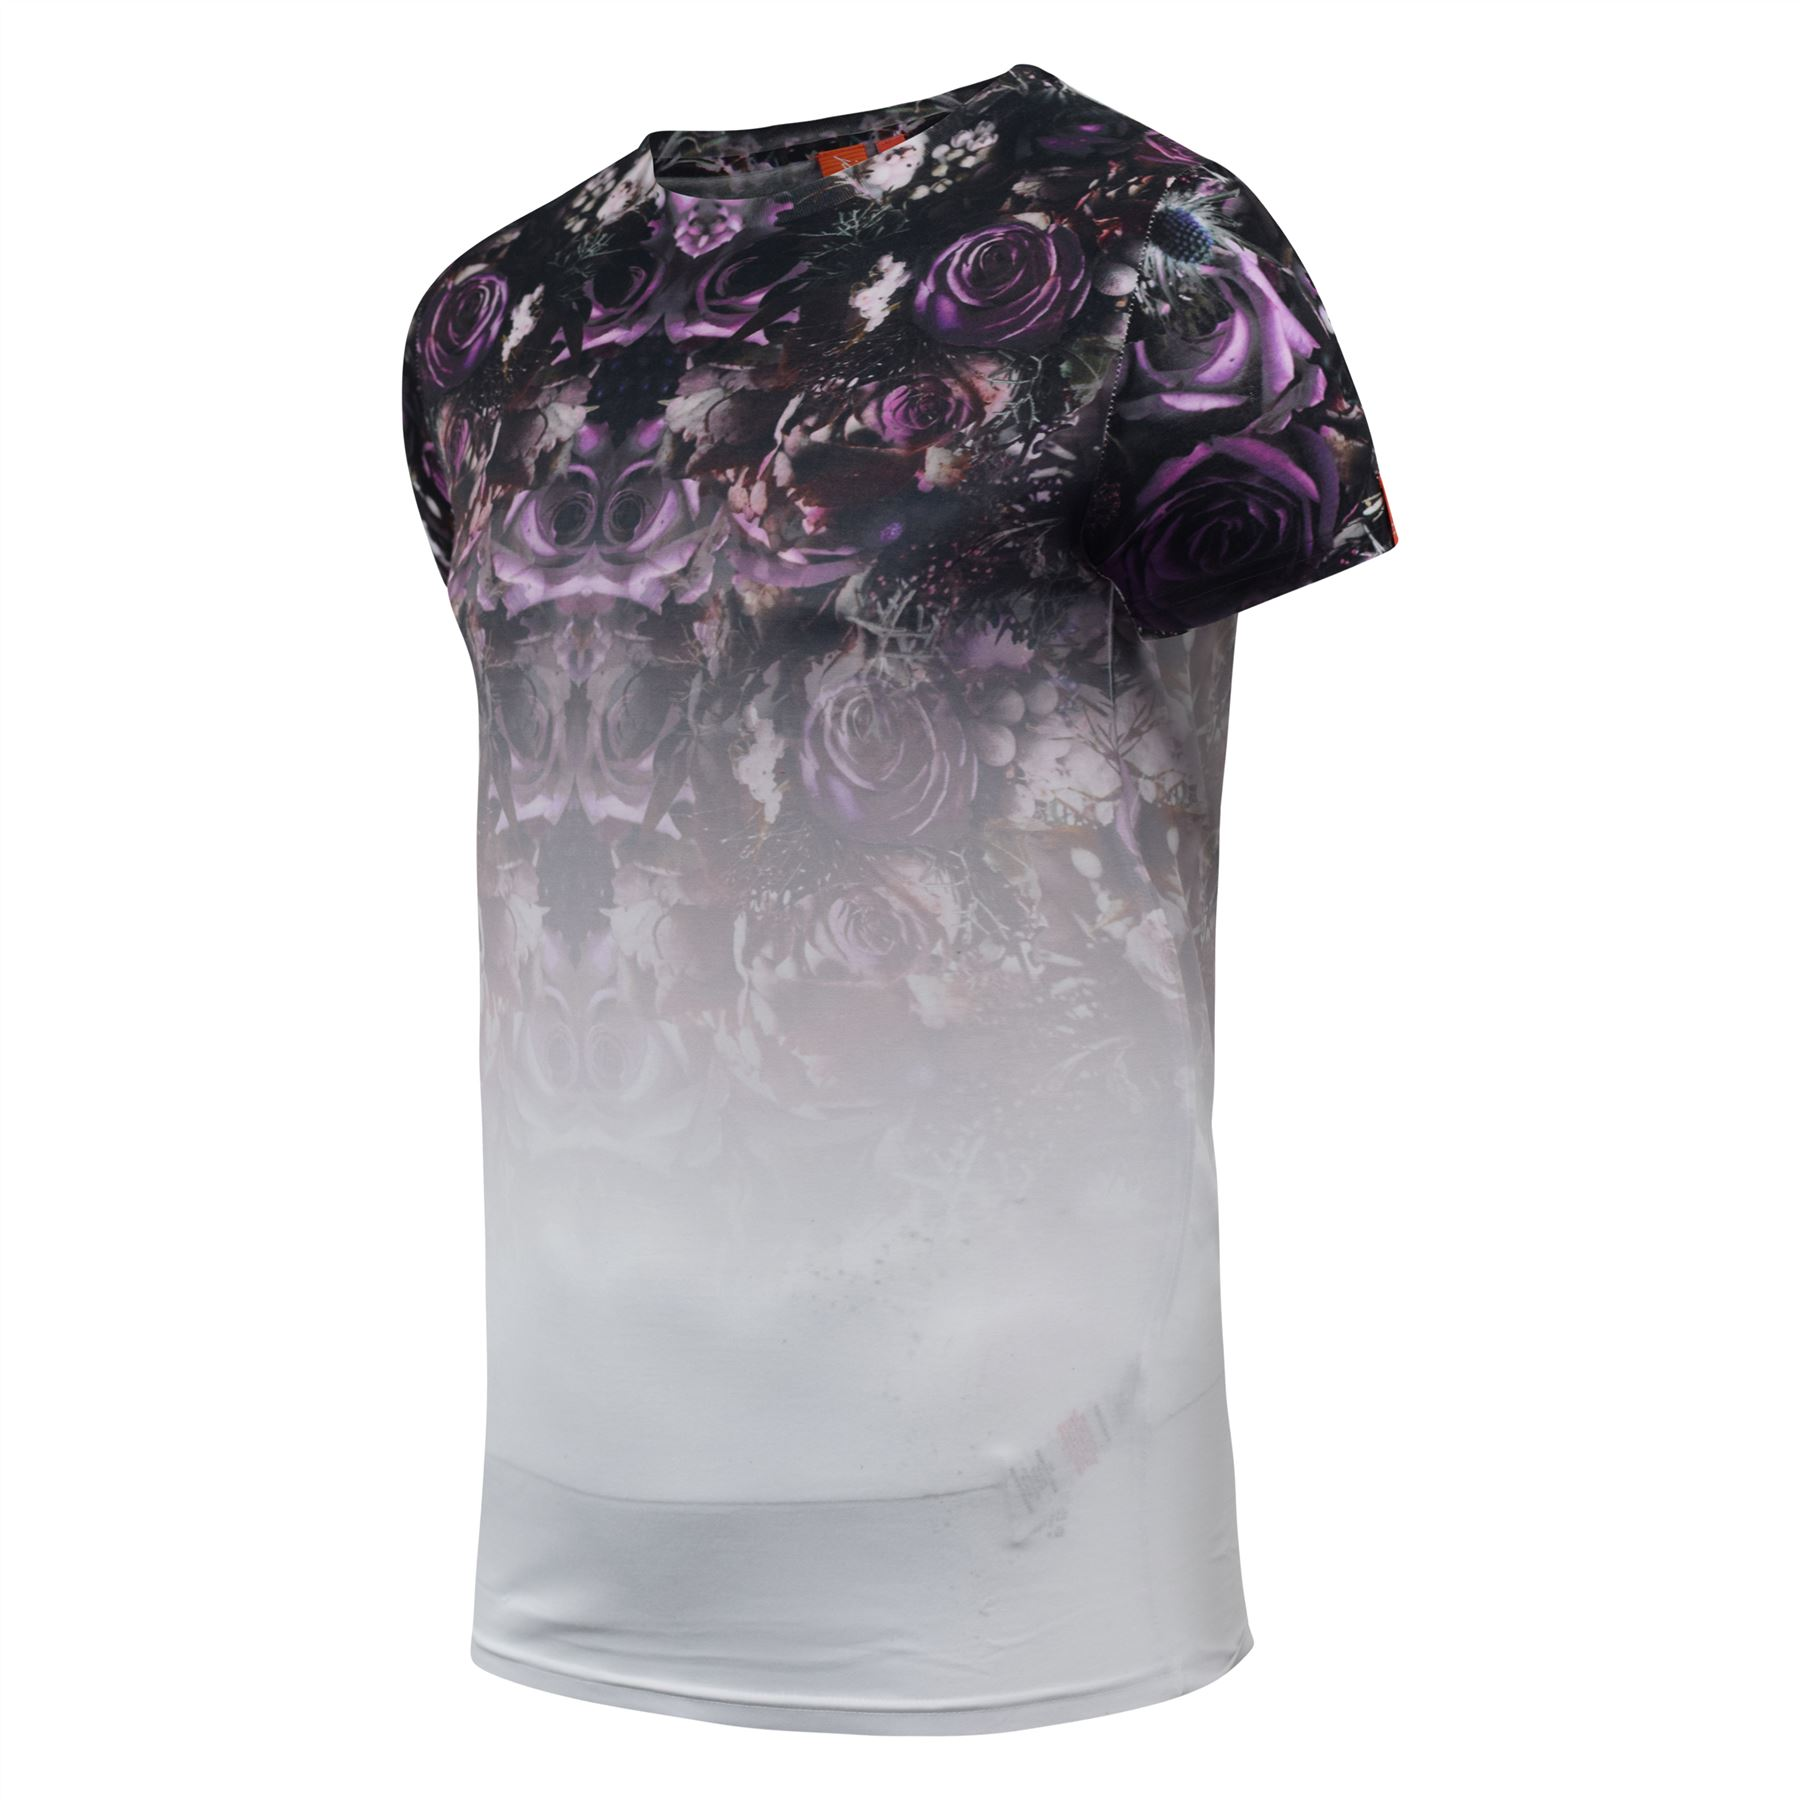 Mens-T-Shirt-Juice-Floral-Print-Flower-Crew-Neck-Tee-Top thumbnail 23